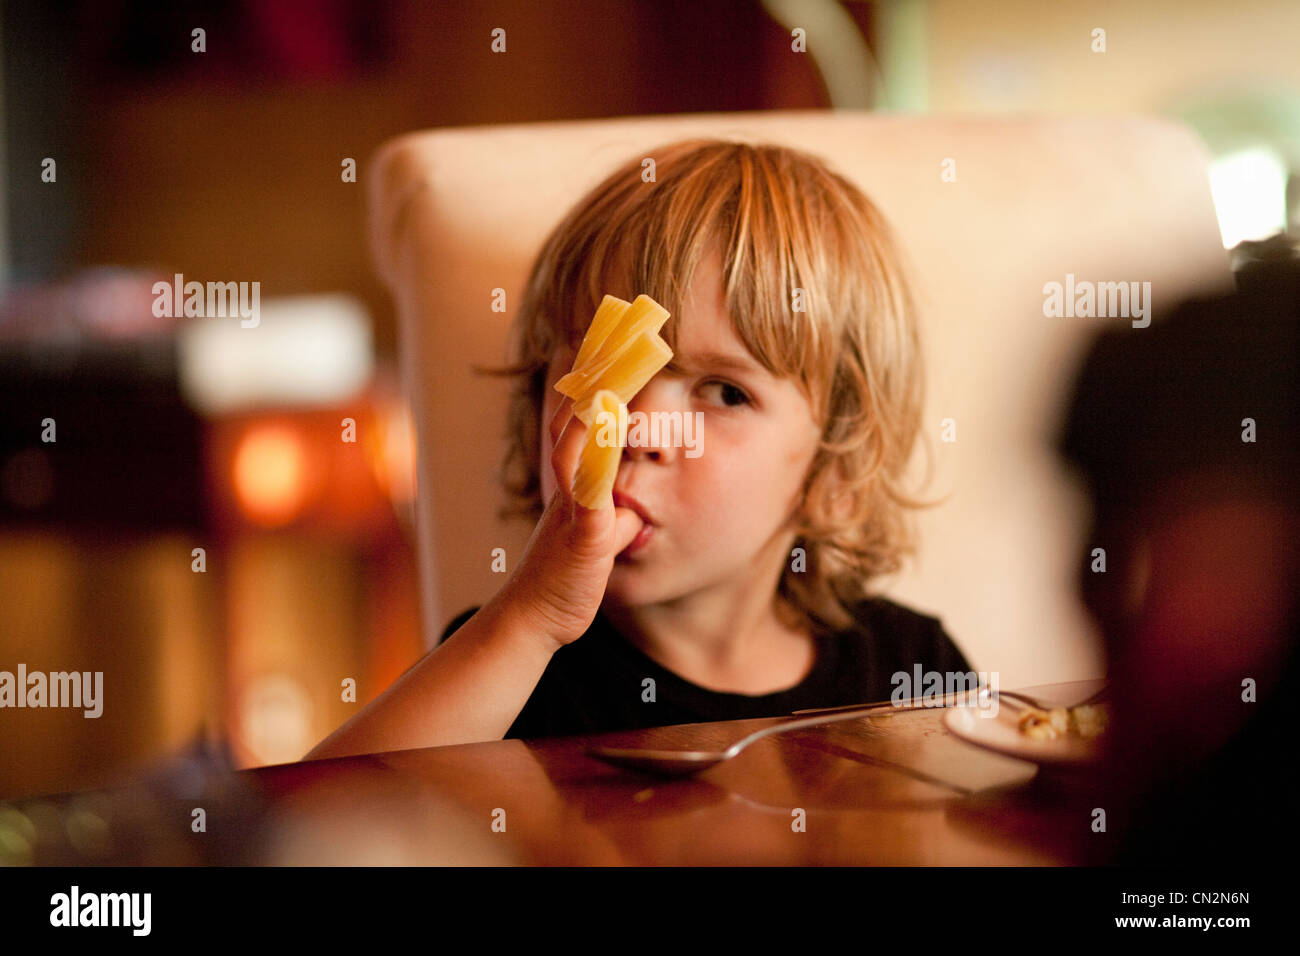 Boy eating pasta off fingers - Stock Image